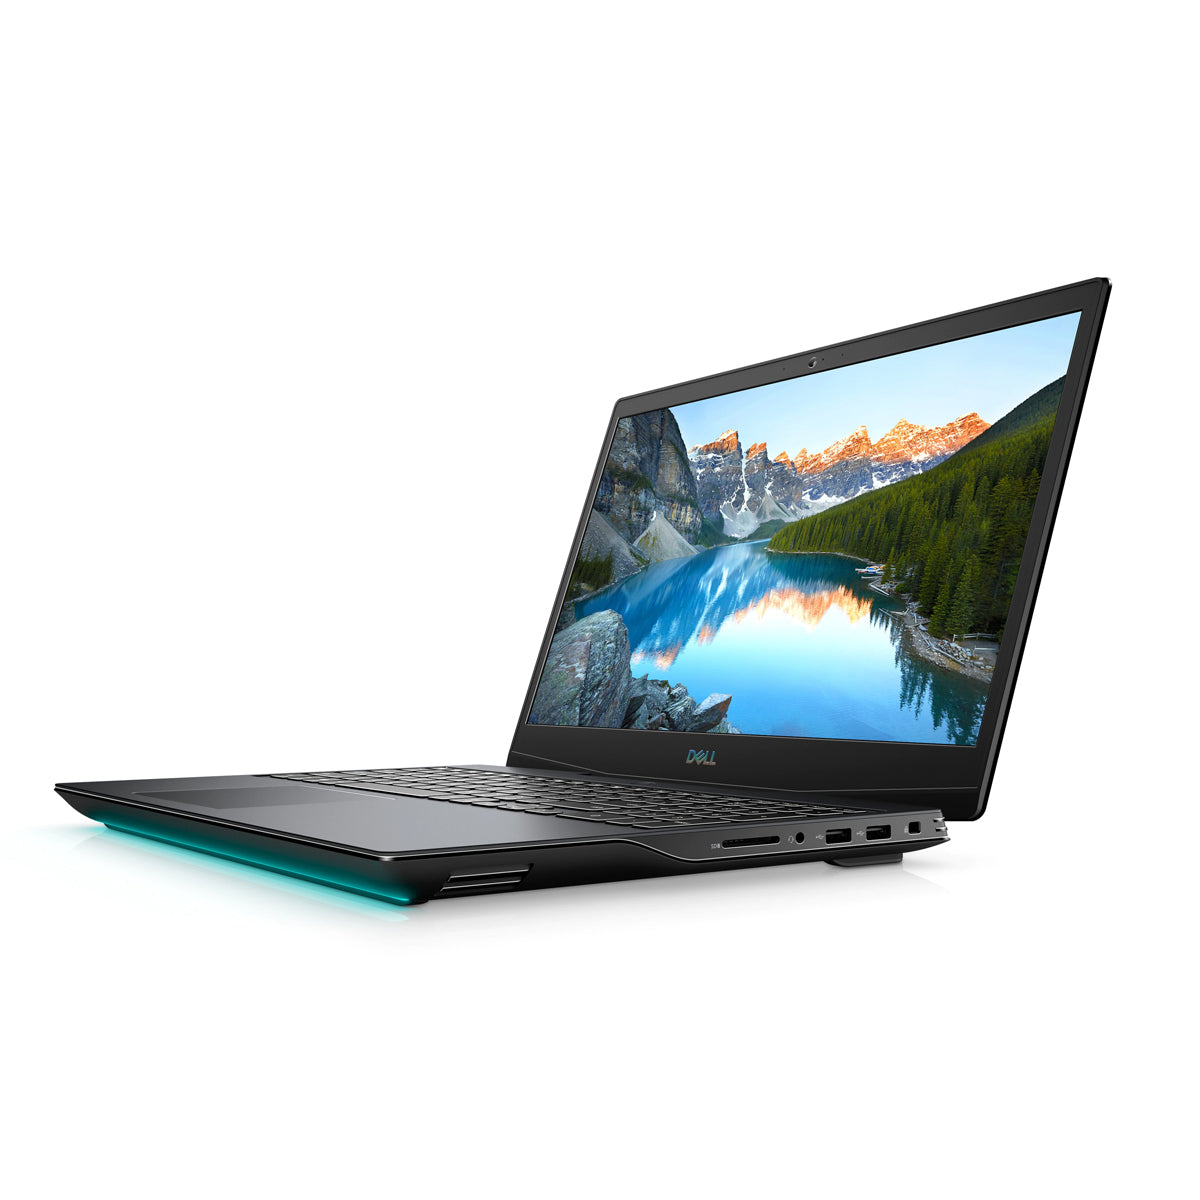 Dell G5 5500 Gaming Laptop 15.6'' FHD 144Hz, Intel Core i7 i7-10750H,  RTX 2060 6GB GPU, 16GB RAM, 1TB NVMe SSD, Backlit Arabic Keyboard, Dos, Interstellar Dark